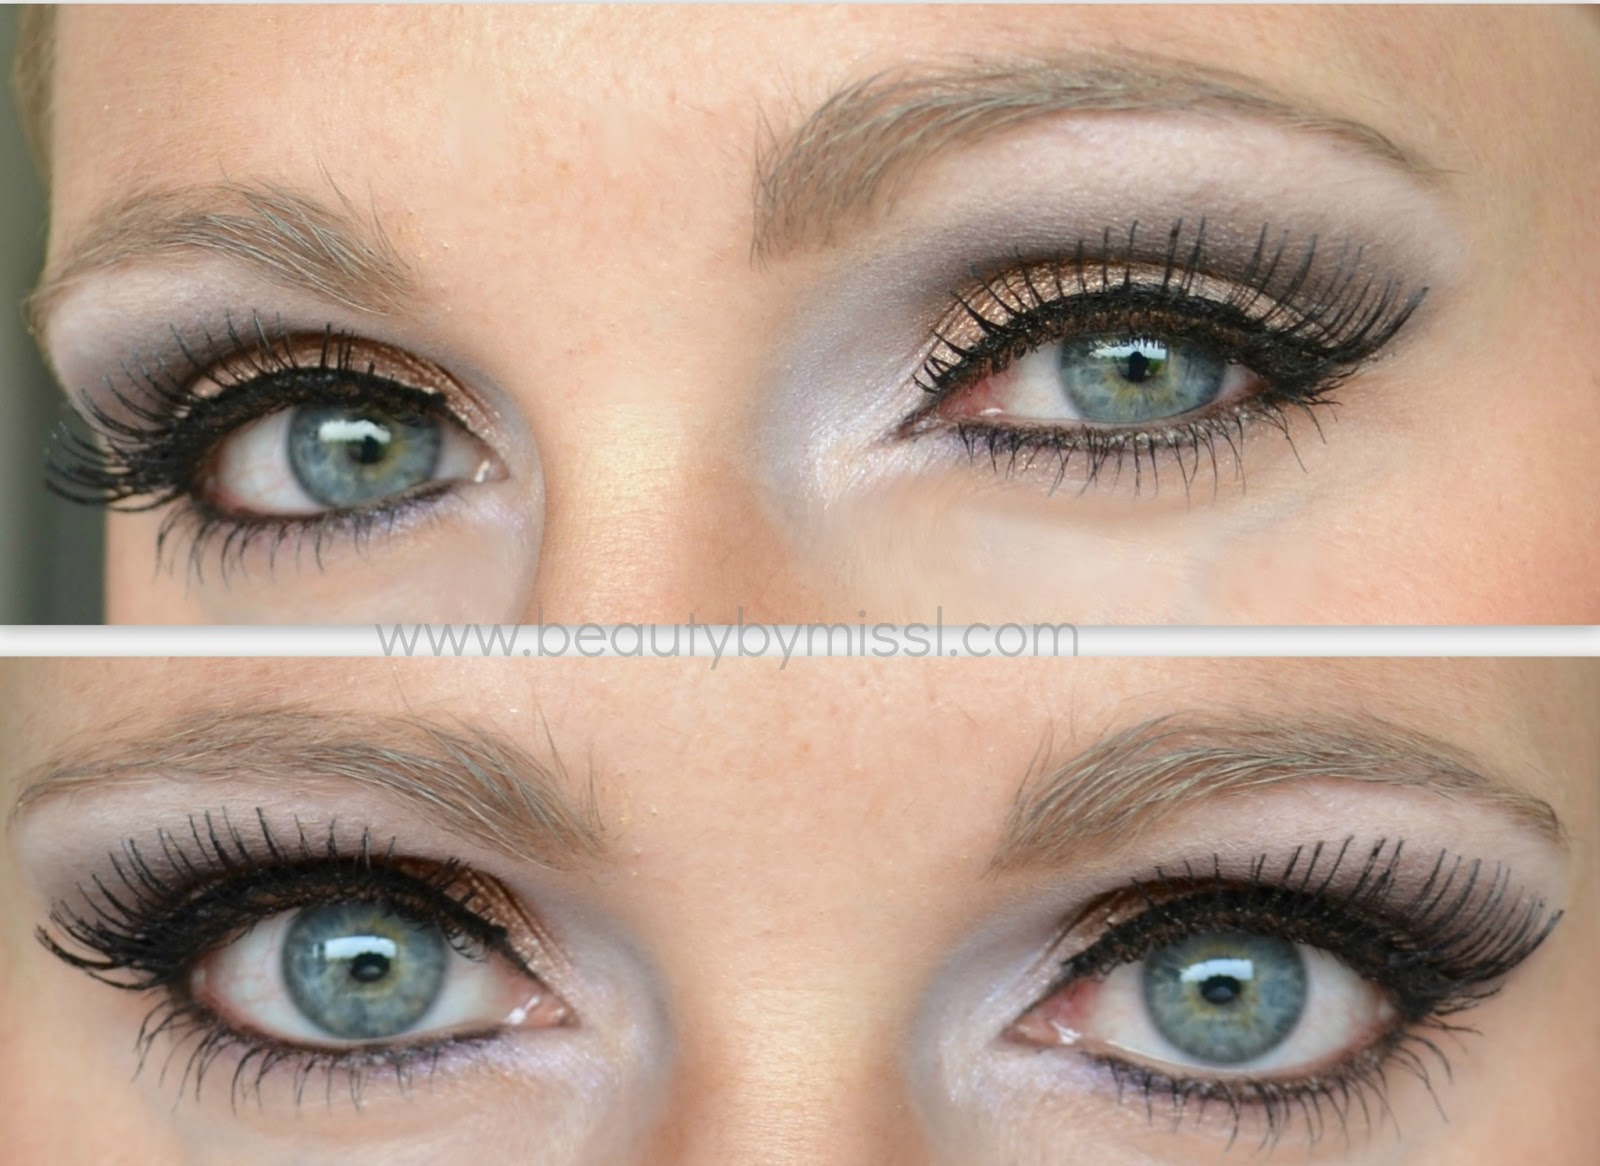 eotd, eye makeup with false lashes